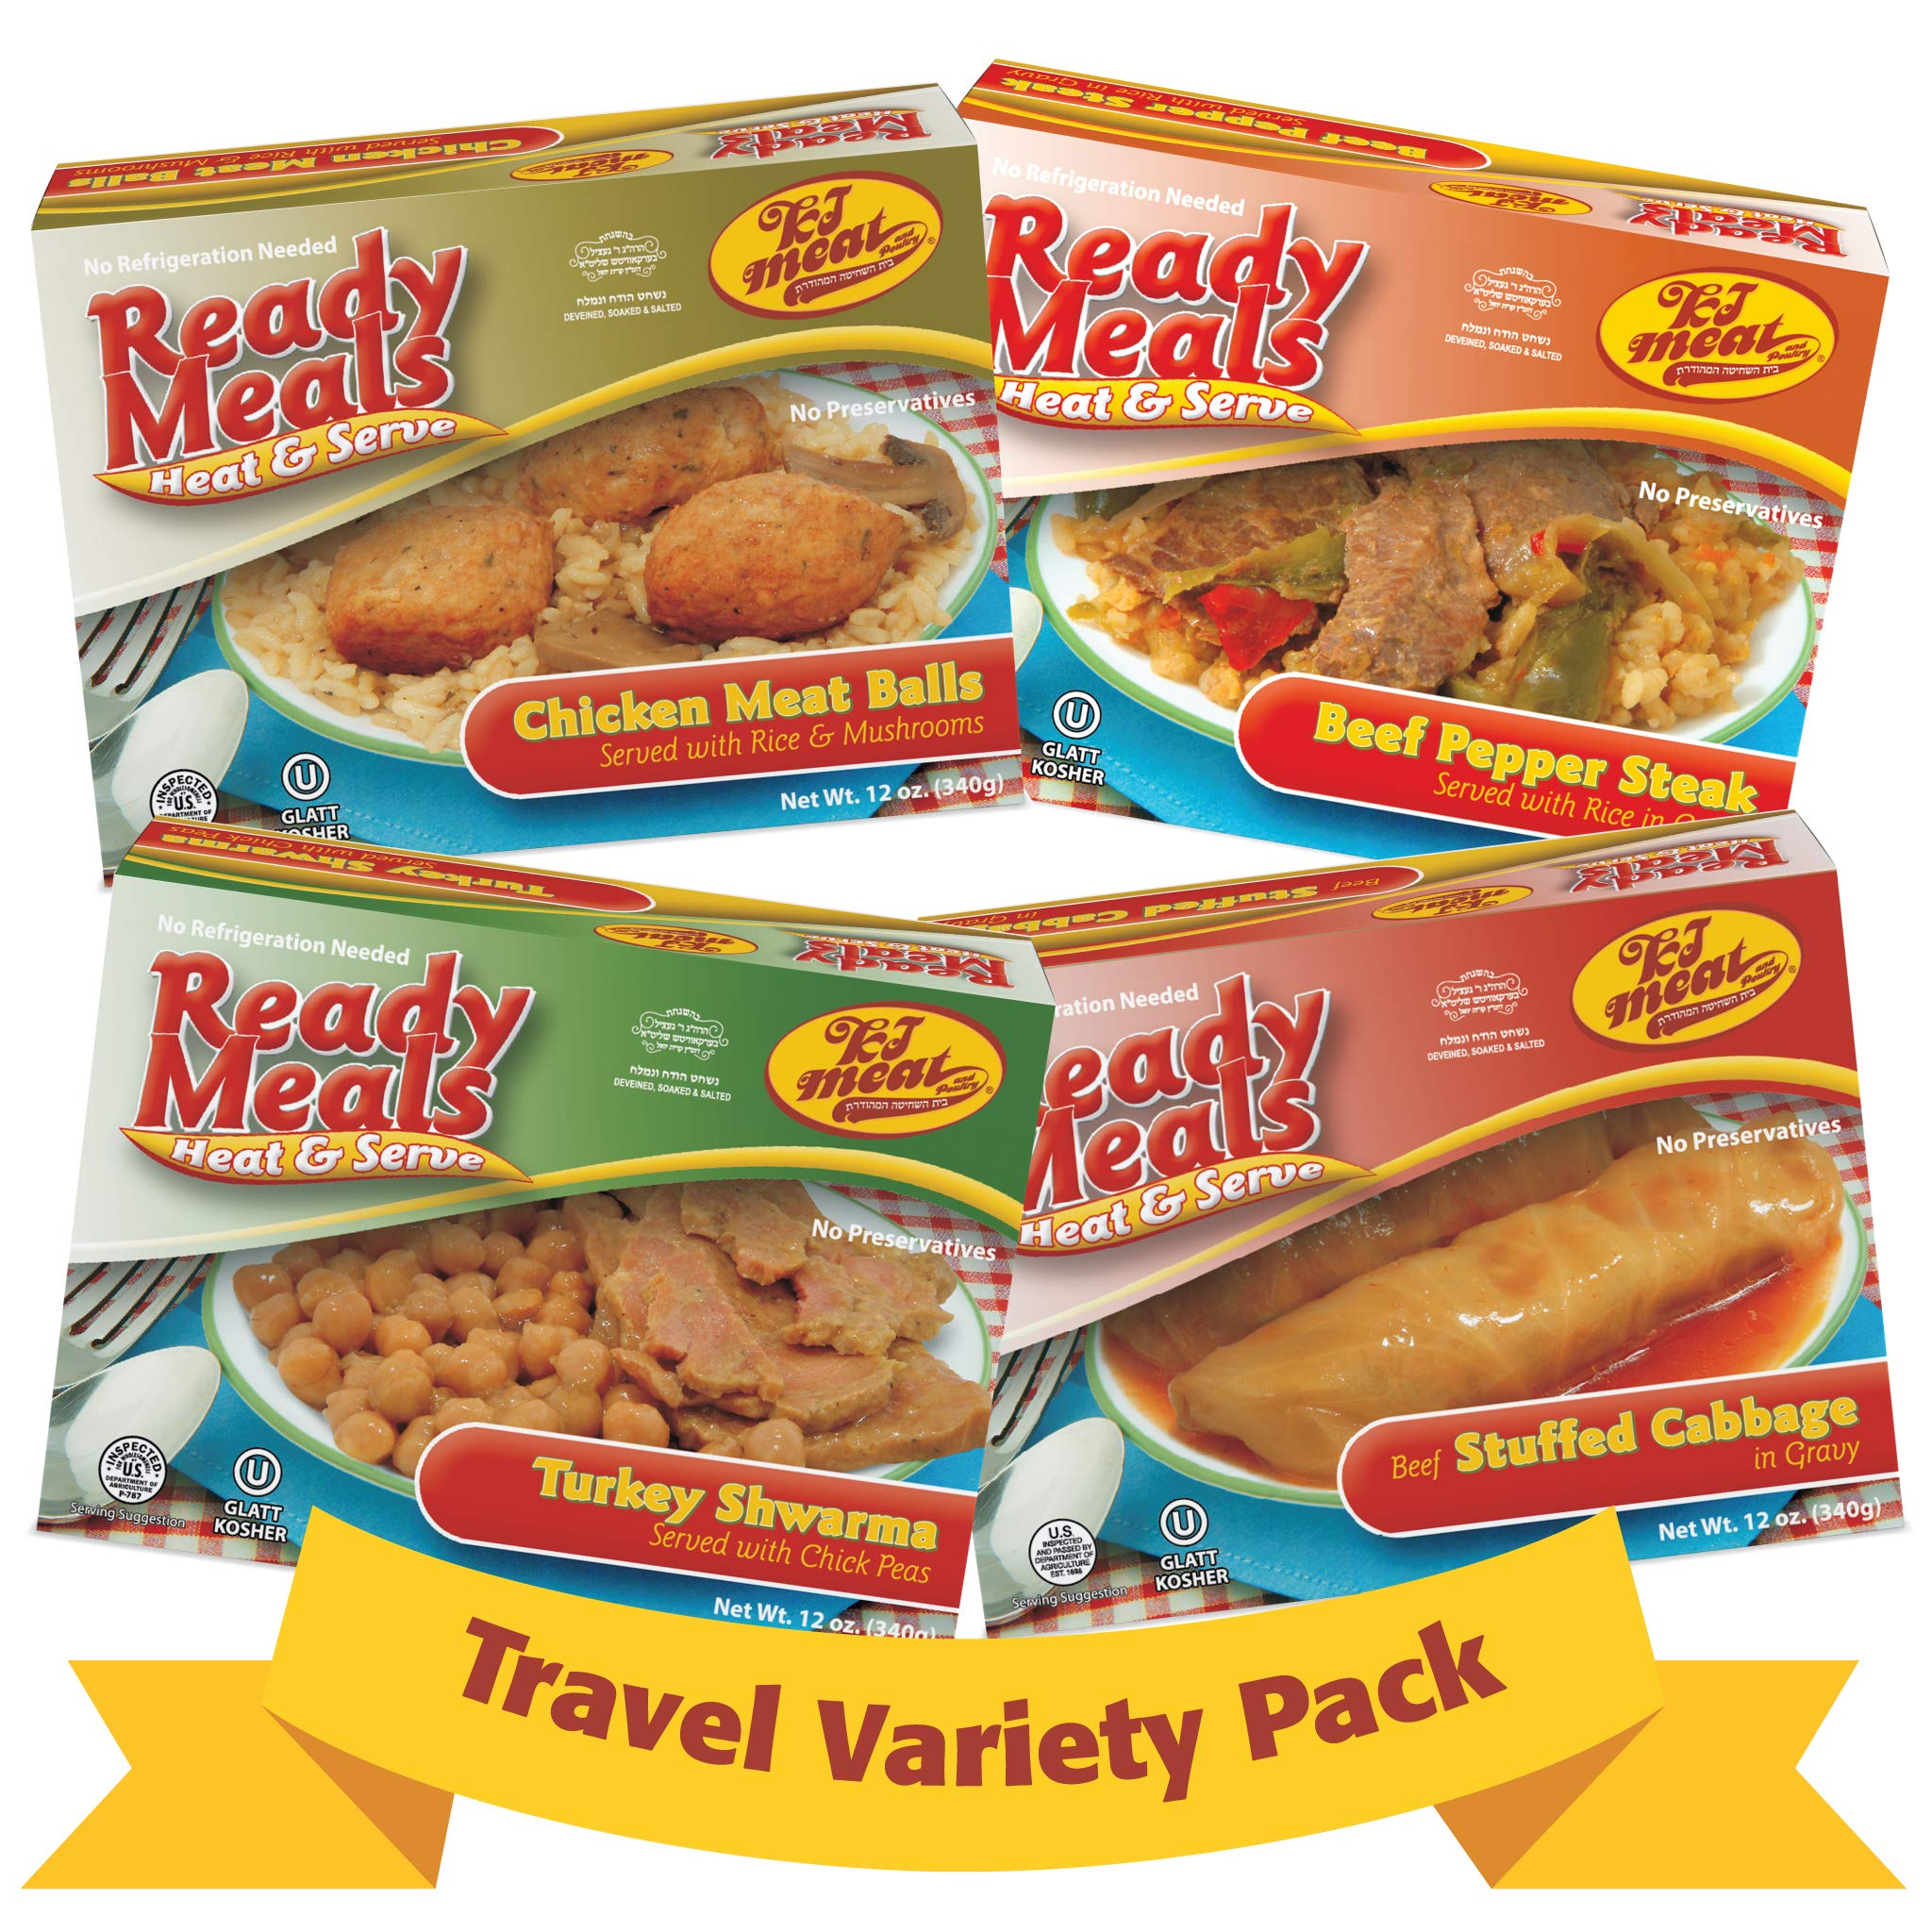 Kosher Meals Ready to Eat Travel Variety Pack, Beef Stuffed Cabbage, Beef Pepper Steak, Turkey Shawarma, Chicken Meatballs (Microwavable, Shelf Stable) Dairy Free - Glatt Kosher (12 ounce - Pack of 4) by KJ Poultry